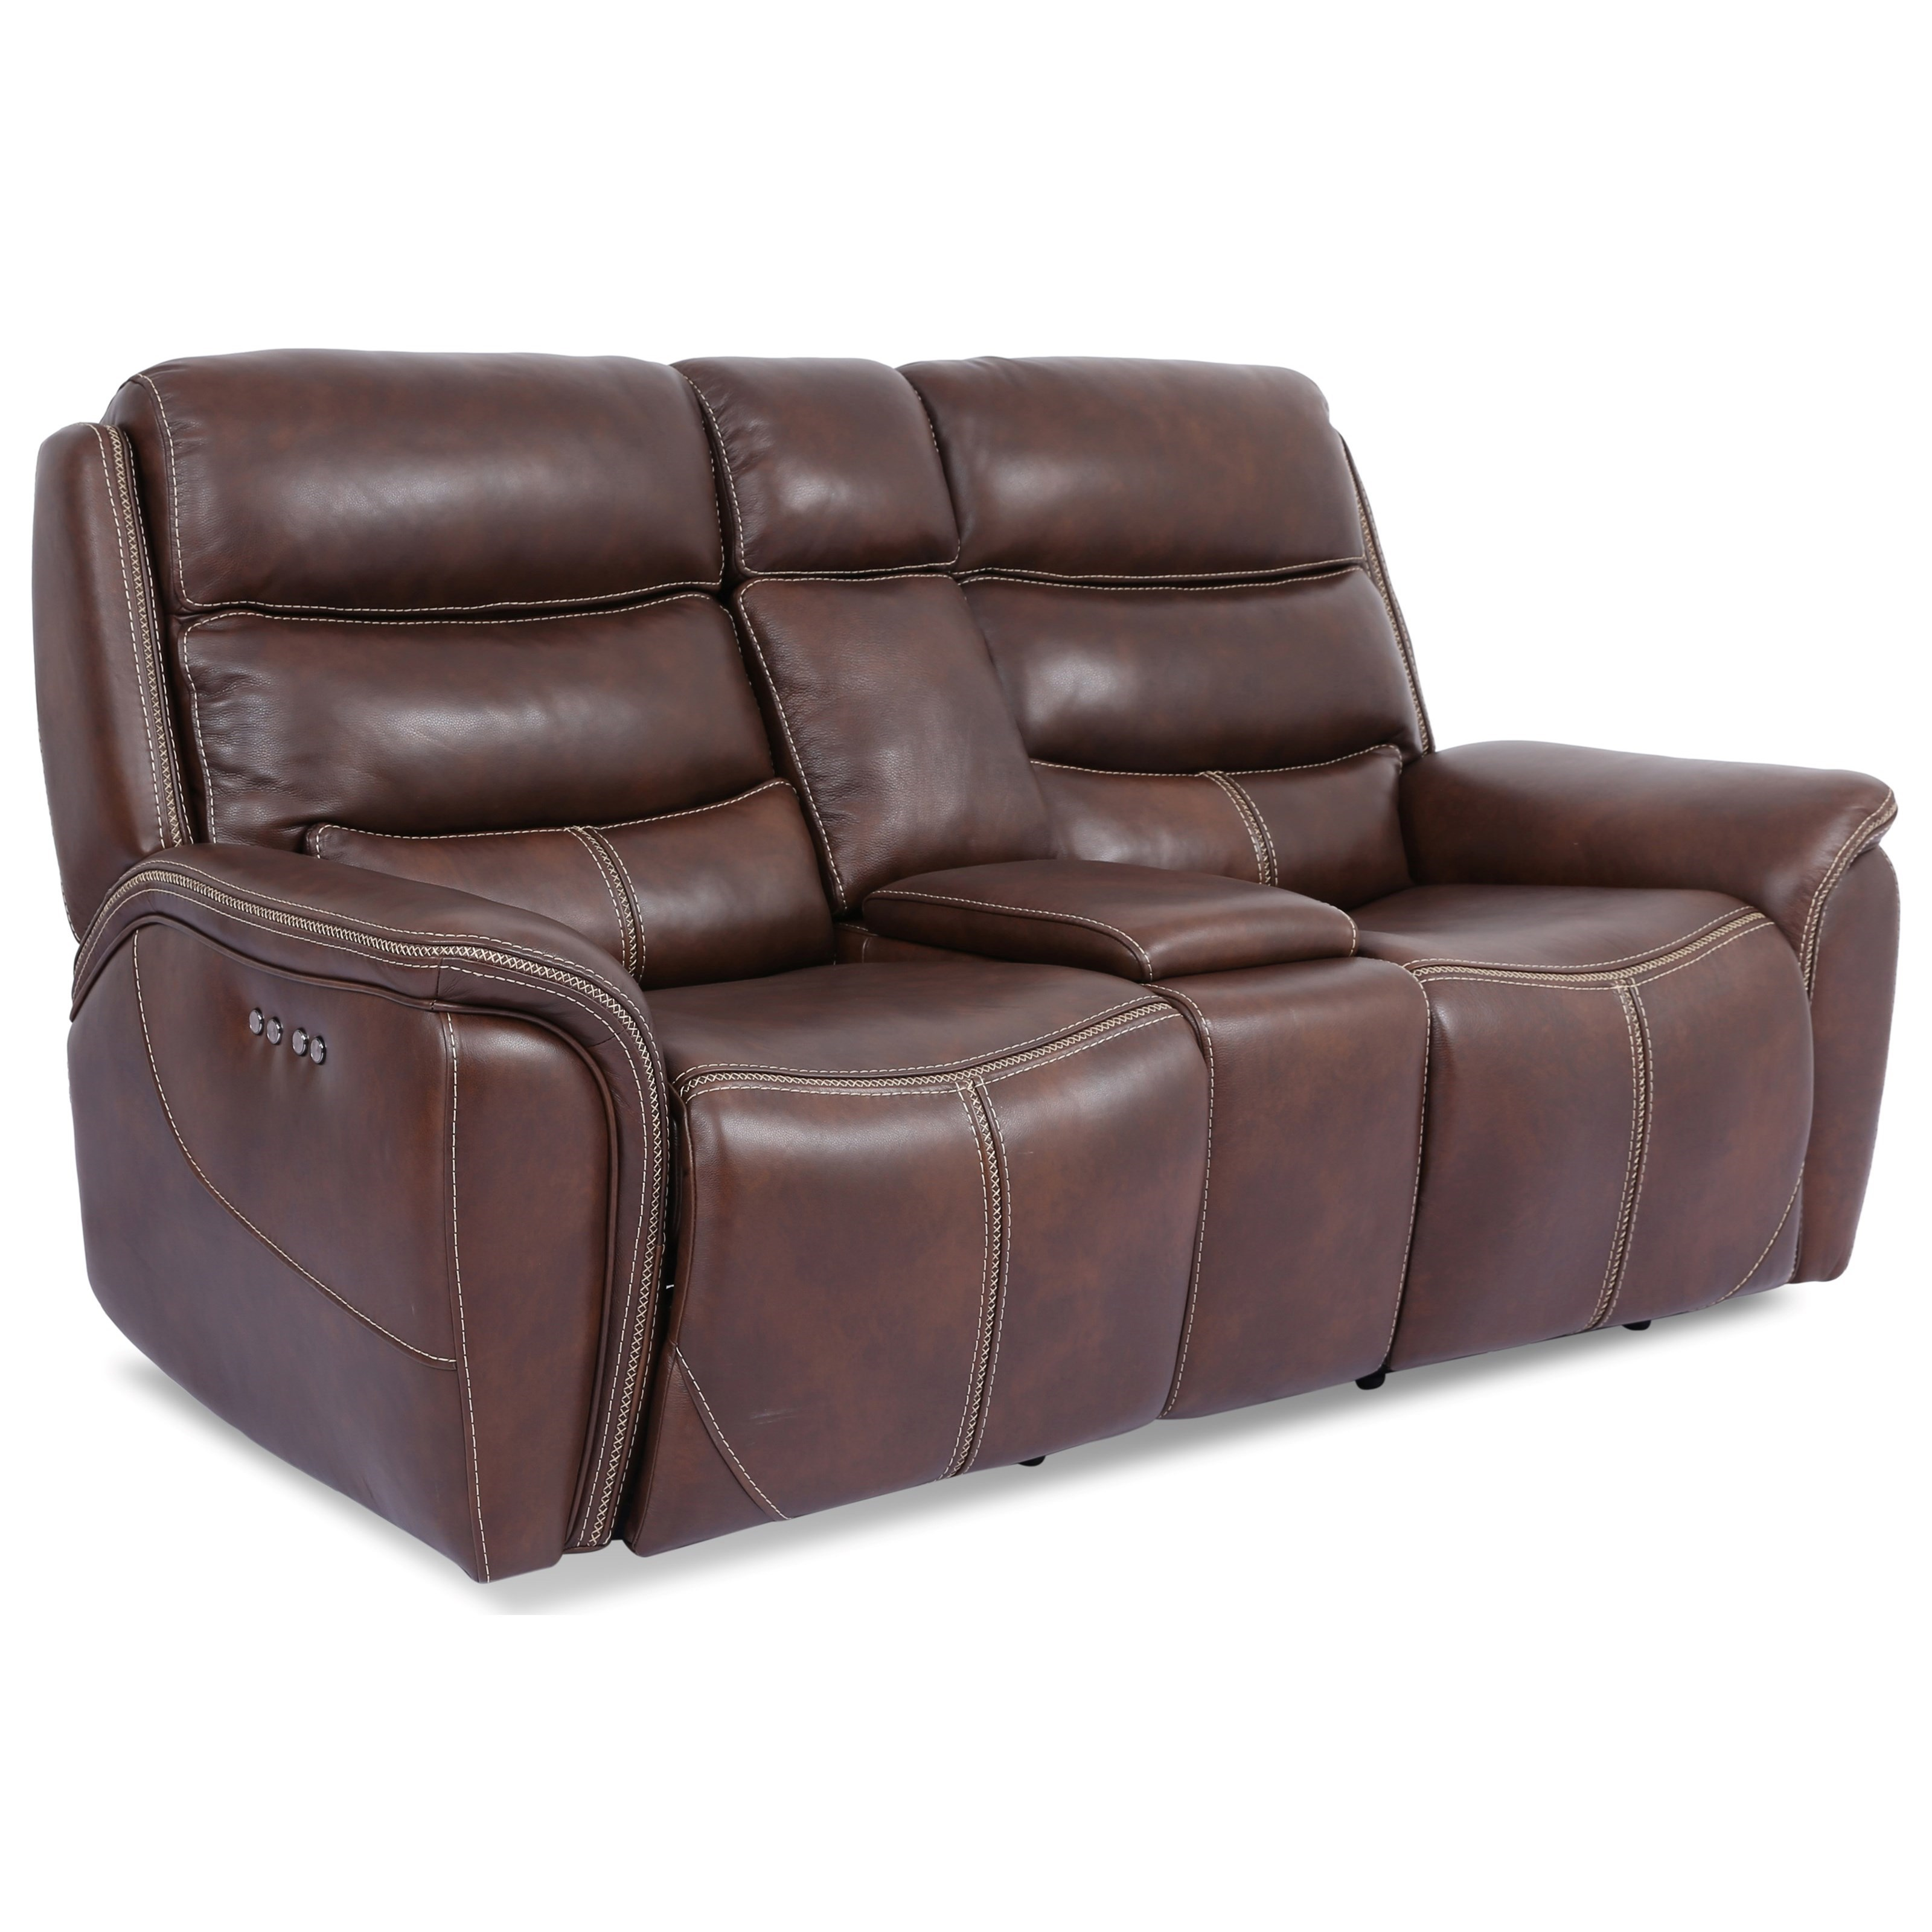 90011 Power Reclining Loveseat by MW Classics at Miller Waldrop Furniture and Decor